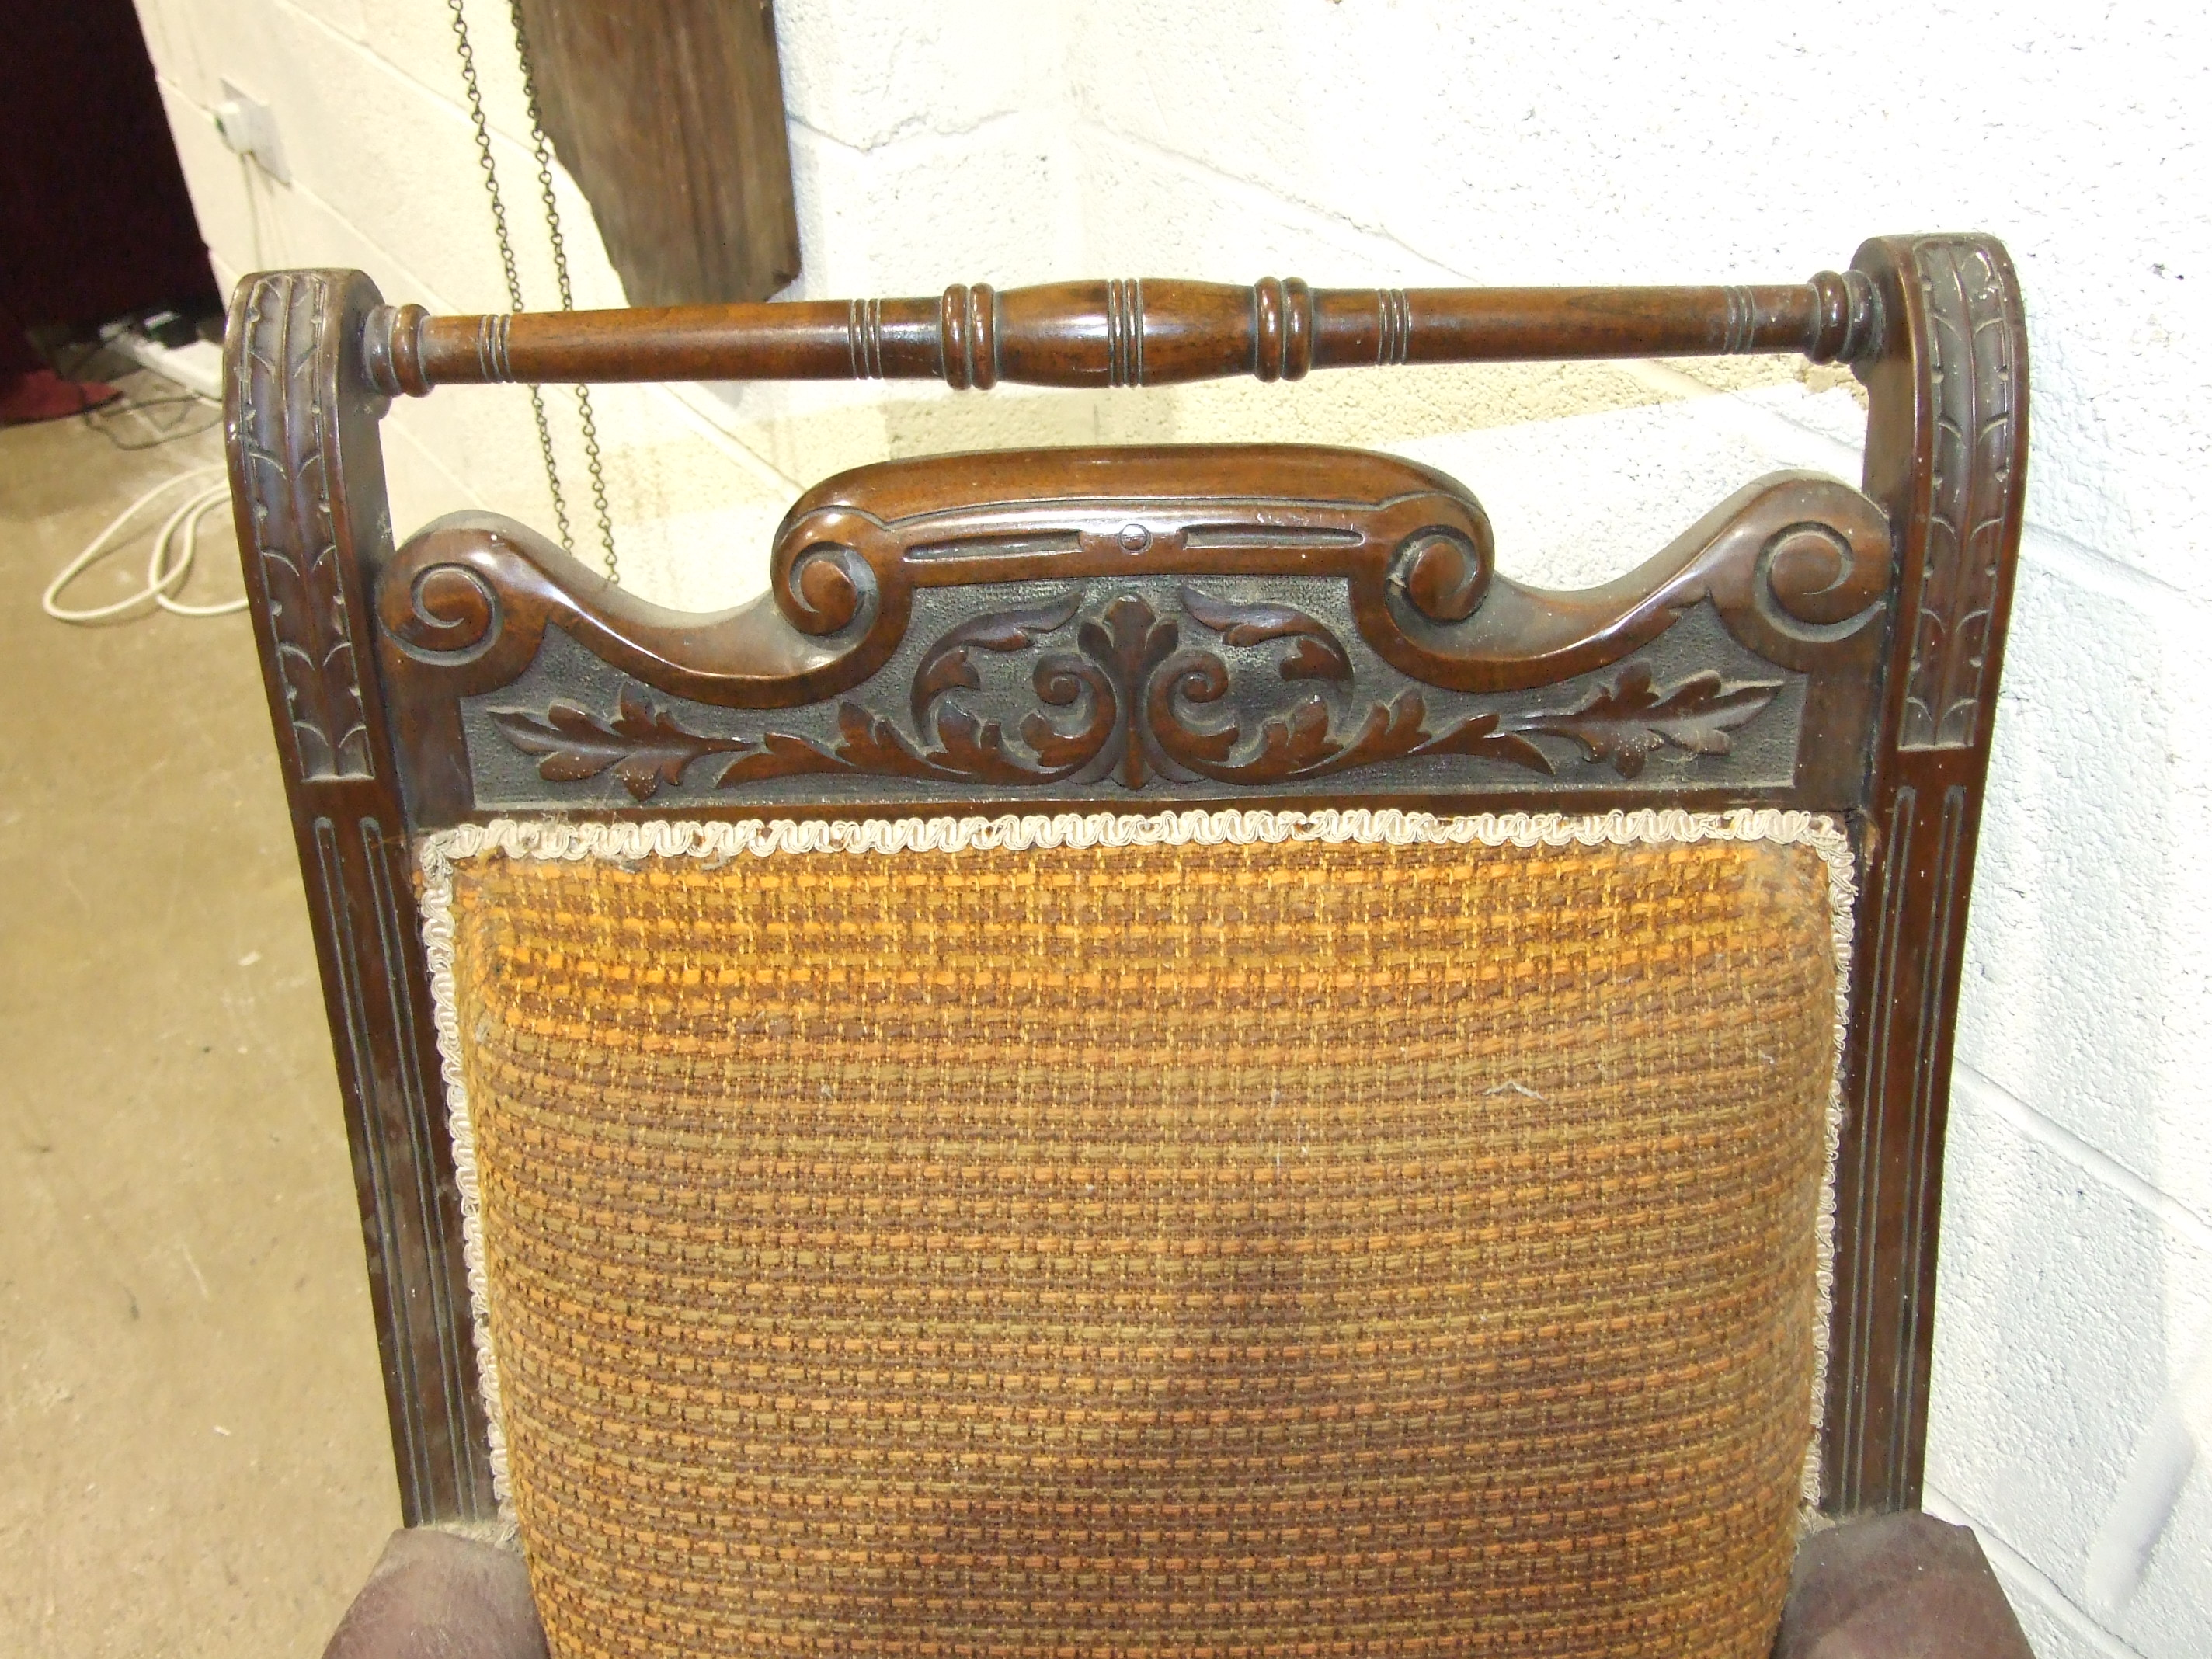 Lot 20 - A late Victorian carved walnut salon chair with upholstered back, seat and arm pads, on turned